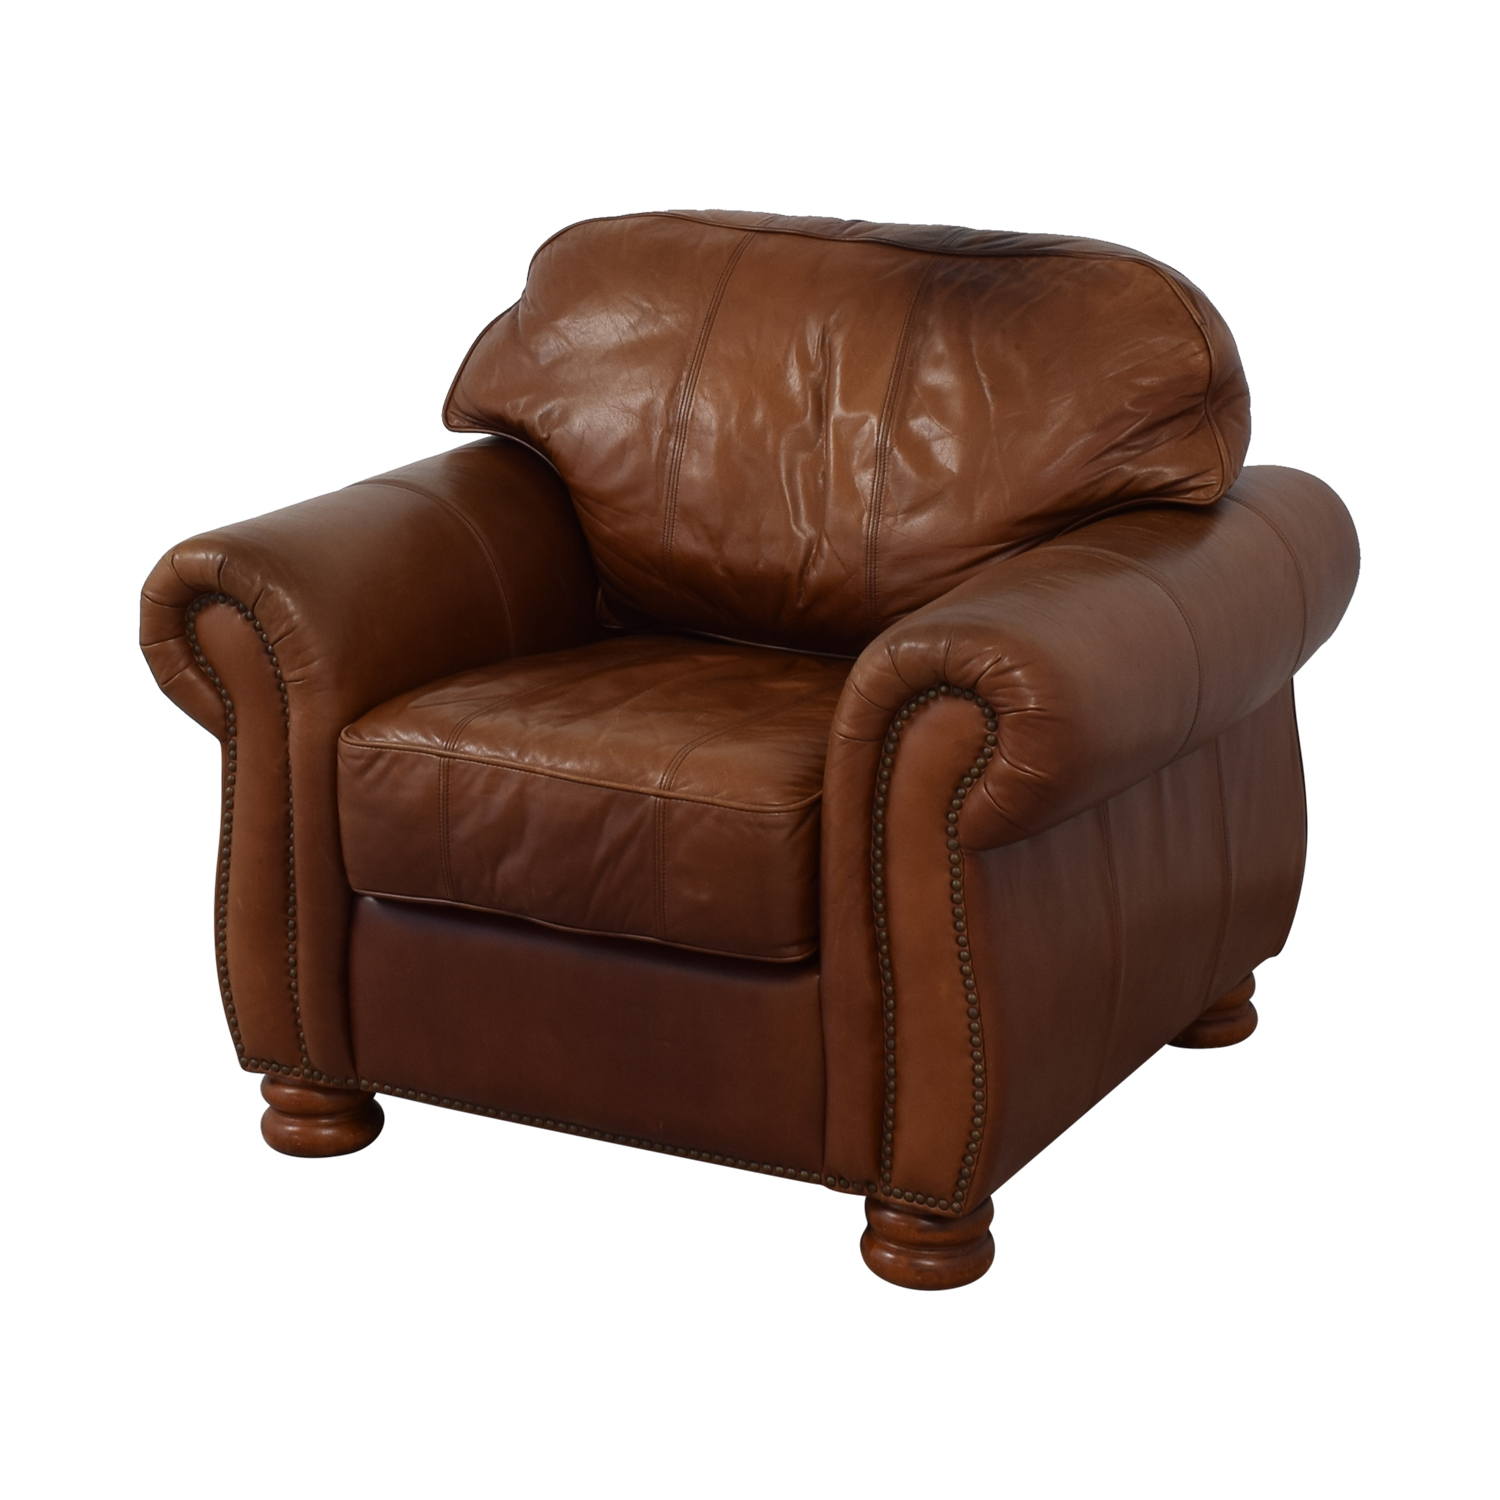 shop Thomasville Leather Sofa Chair Thomasville Chairs